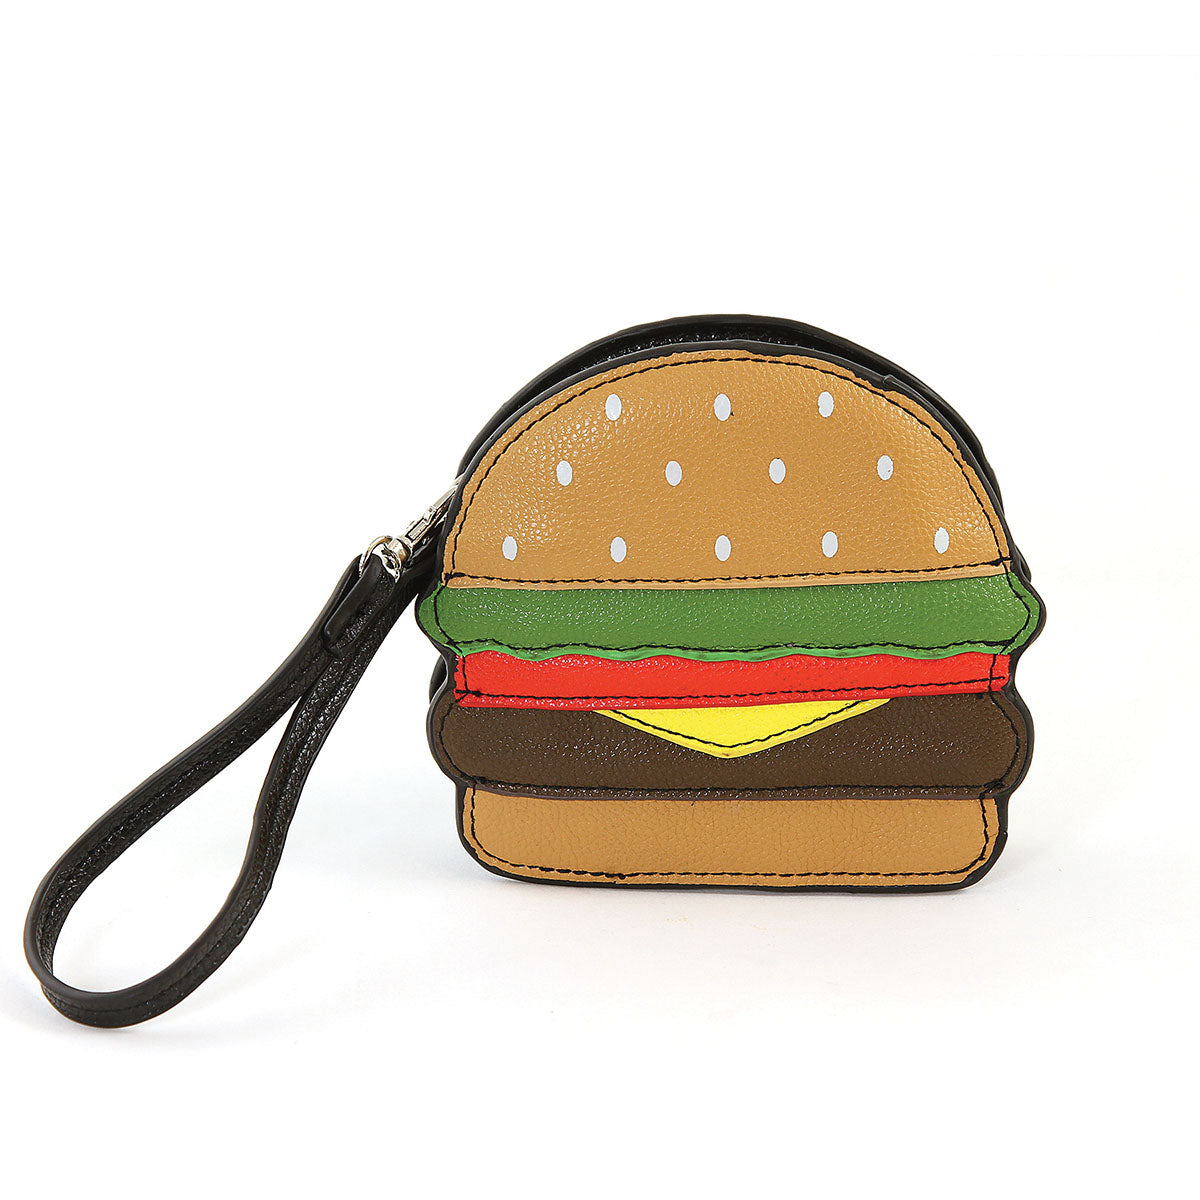 Sleepyville Critters-Hamburger Zippered Coin Purse in Vinyl Material front view